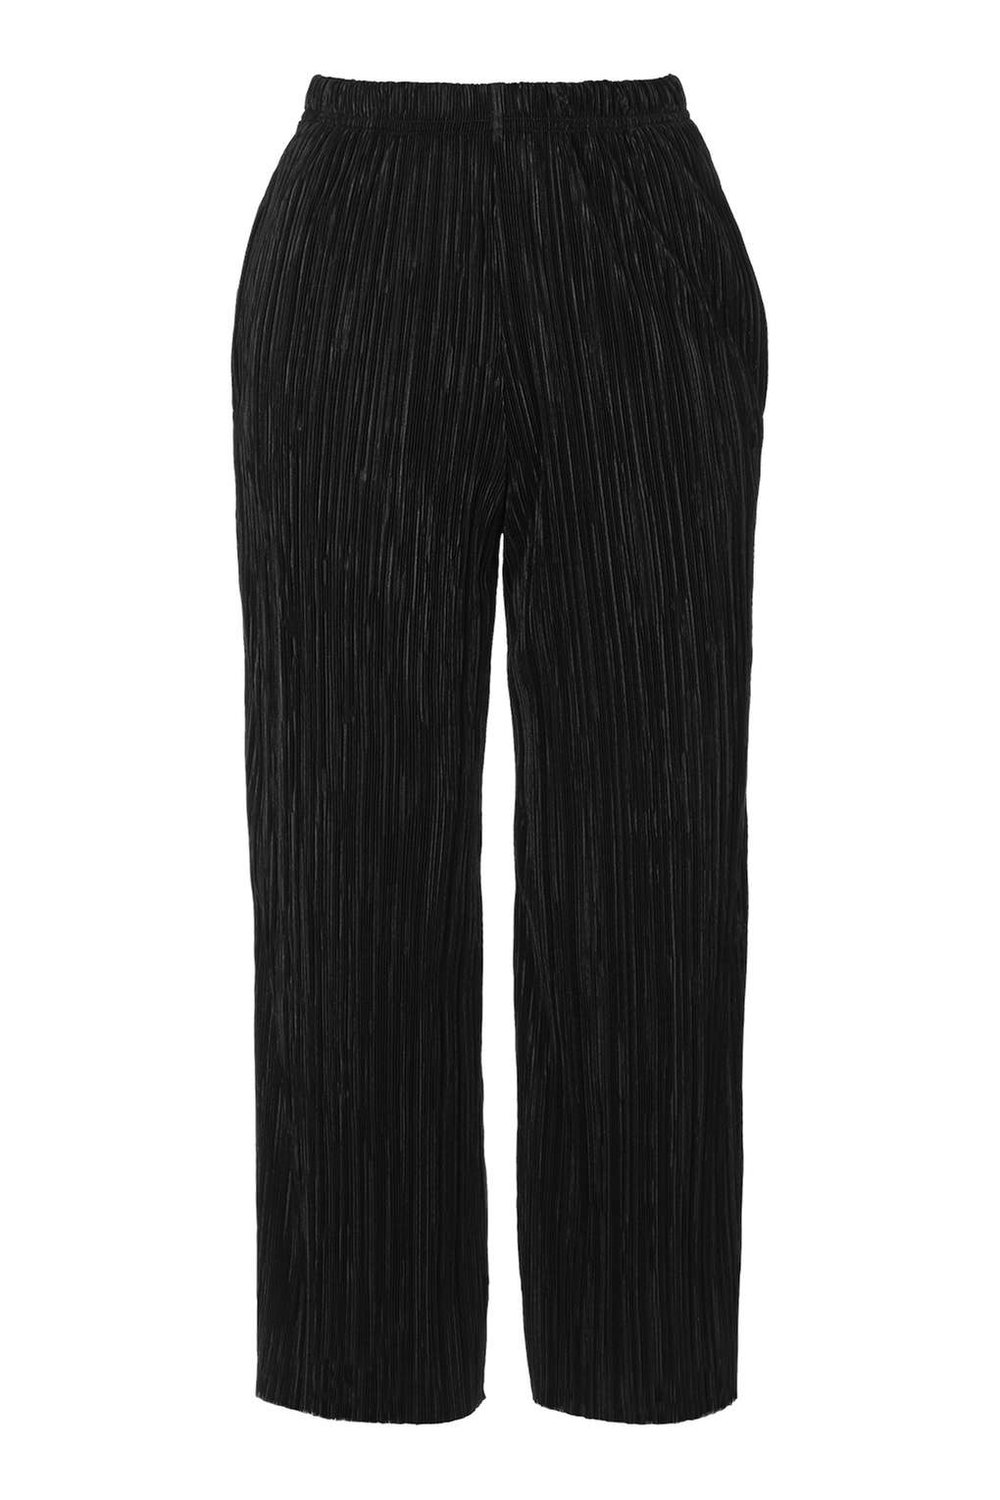 TOPSHOP VELVET BLACK TROUSERS